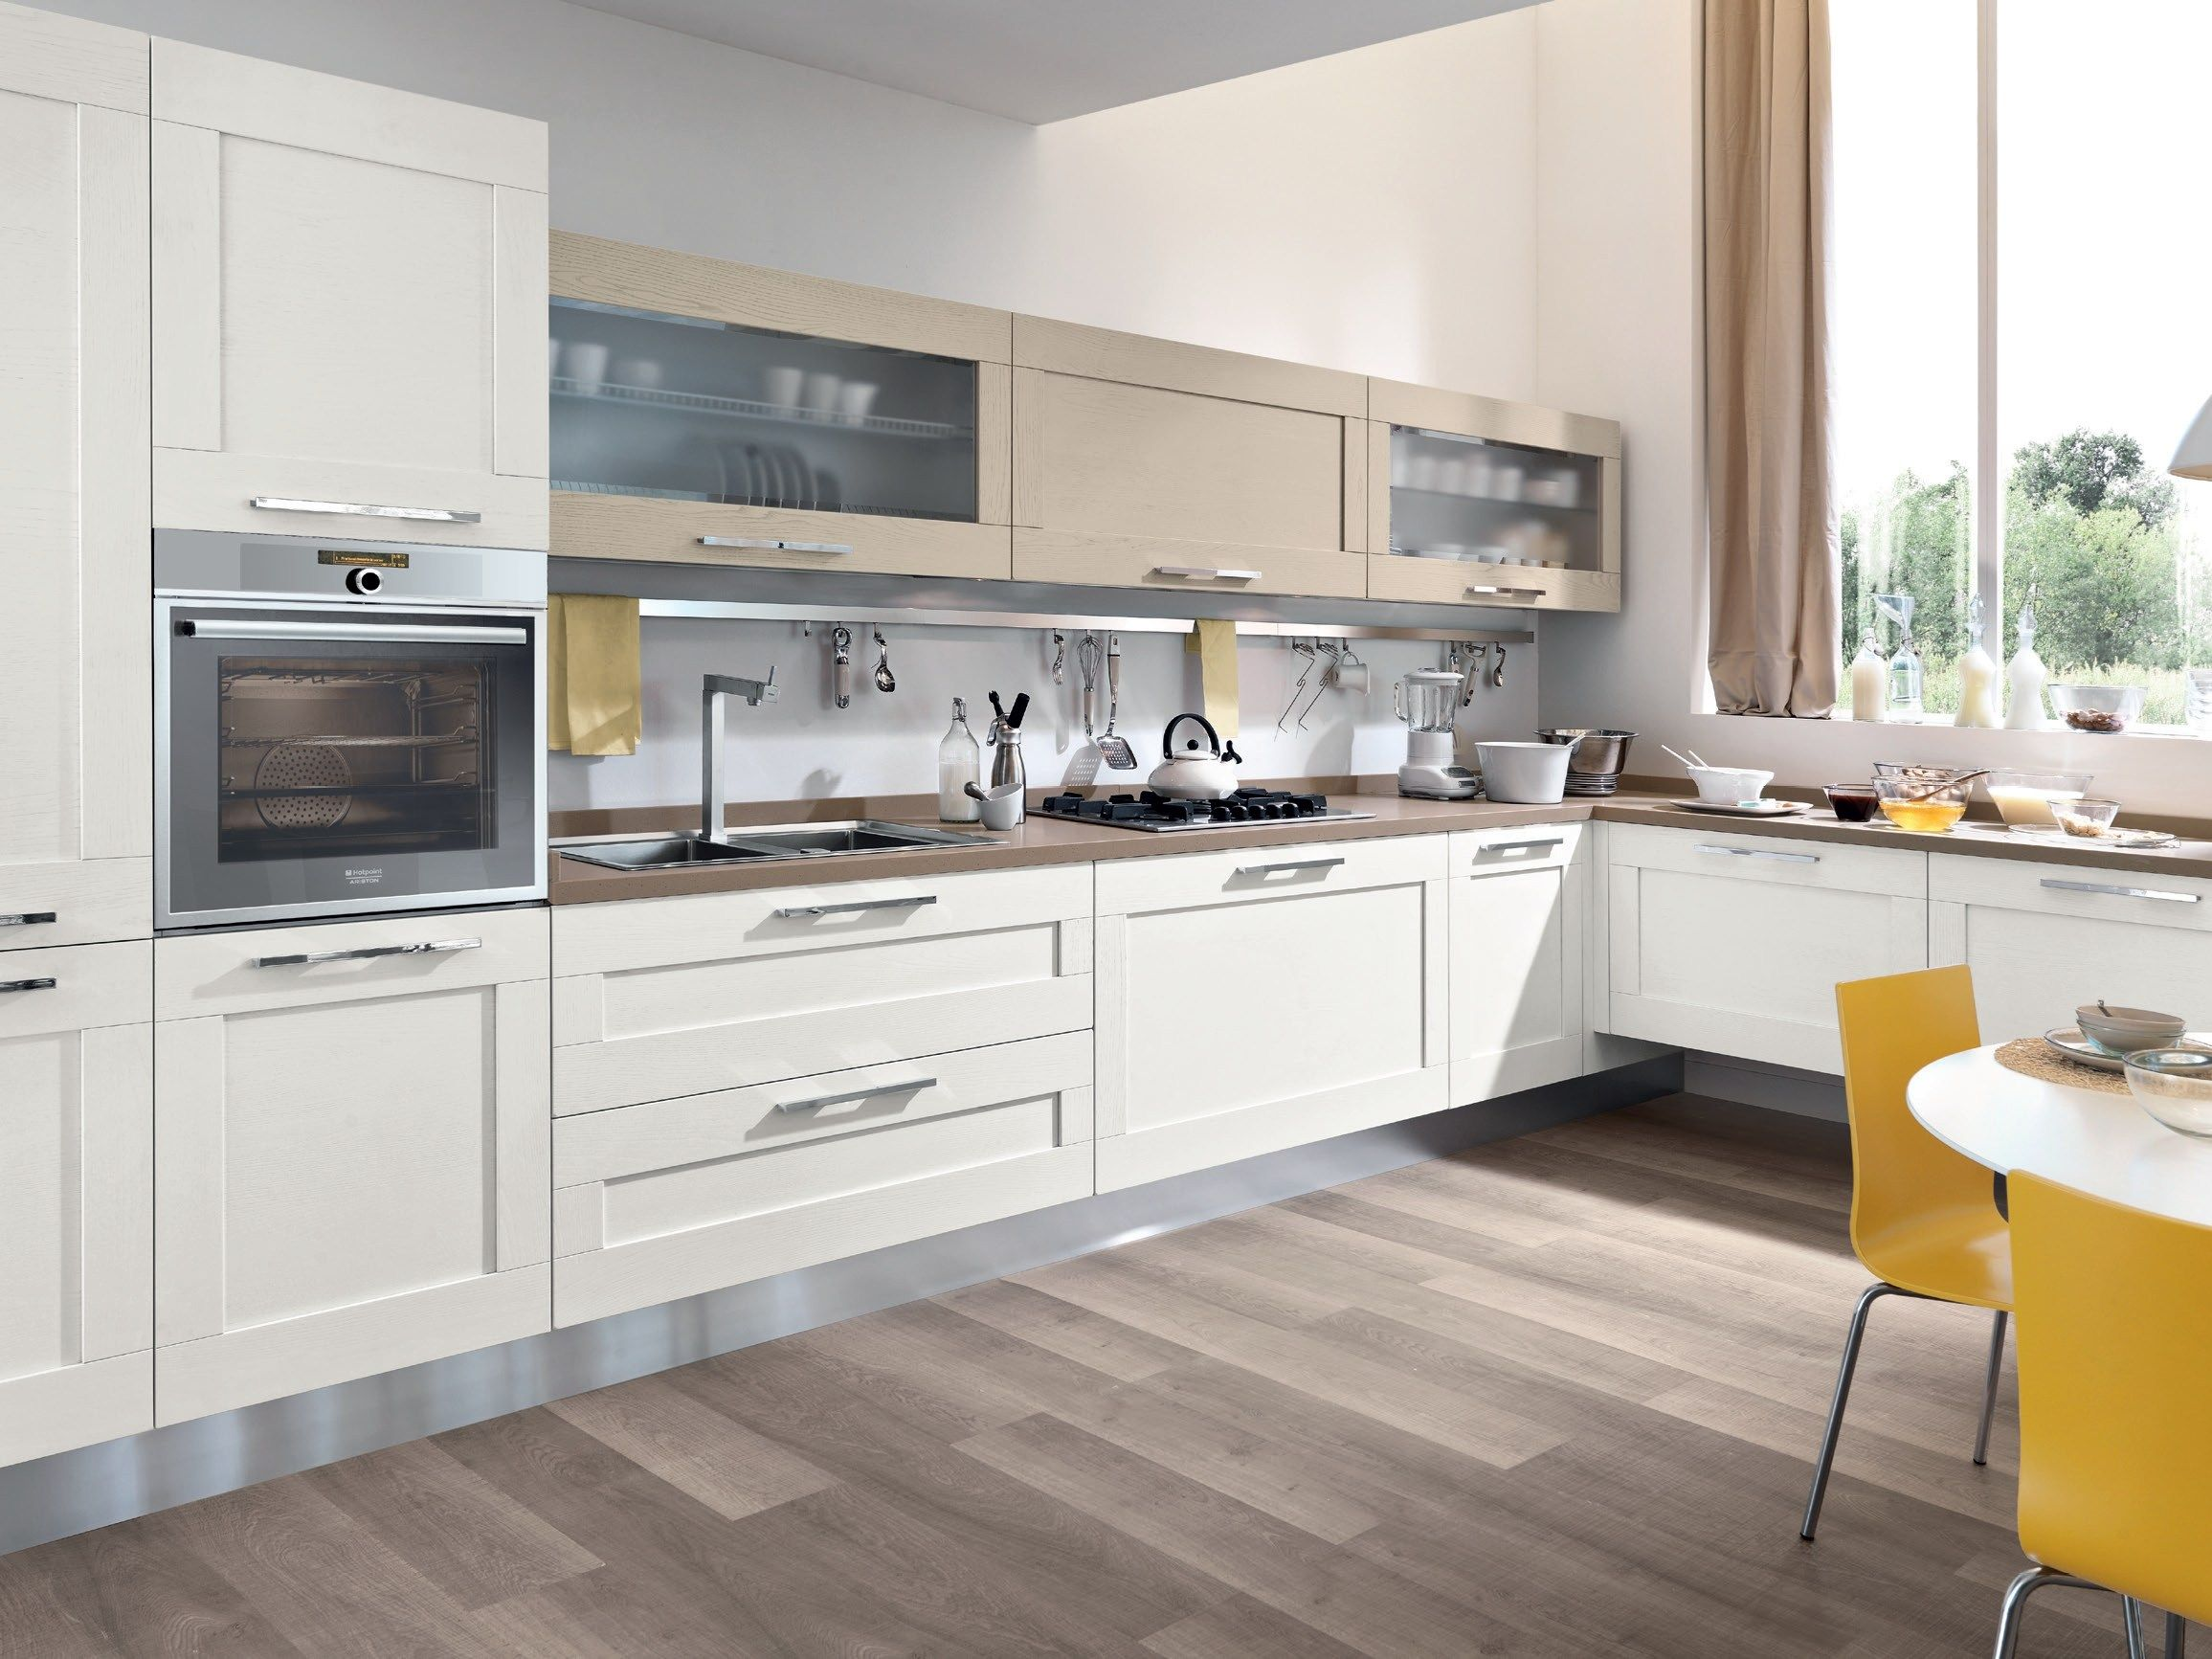 CLAUDIA - Cucina Lube Classica | Solid wood kitchens, Solid wood ...